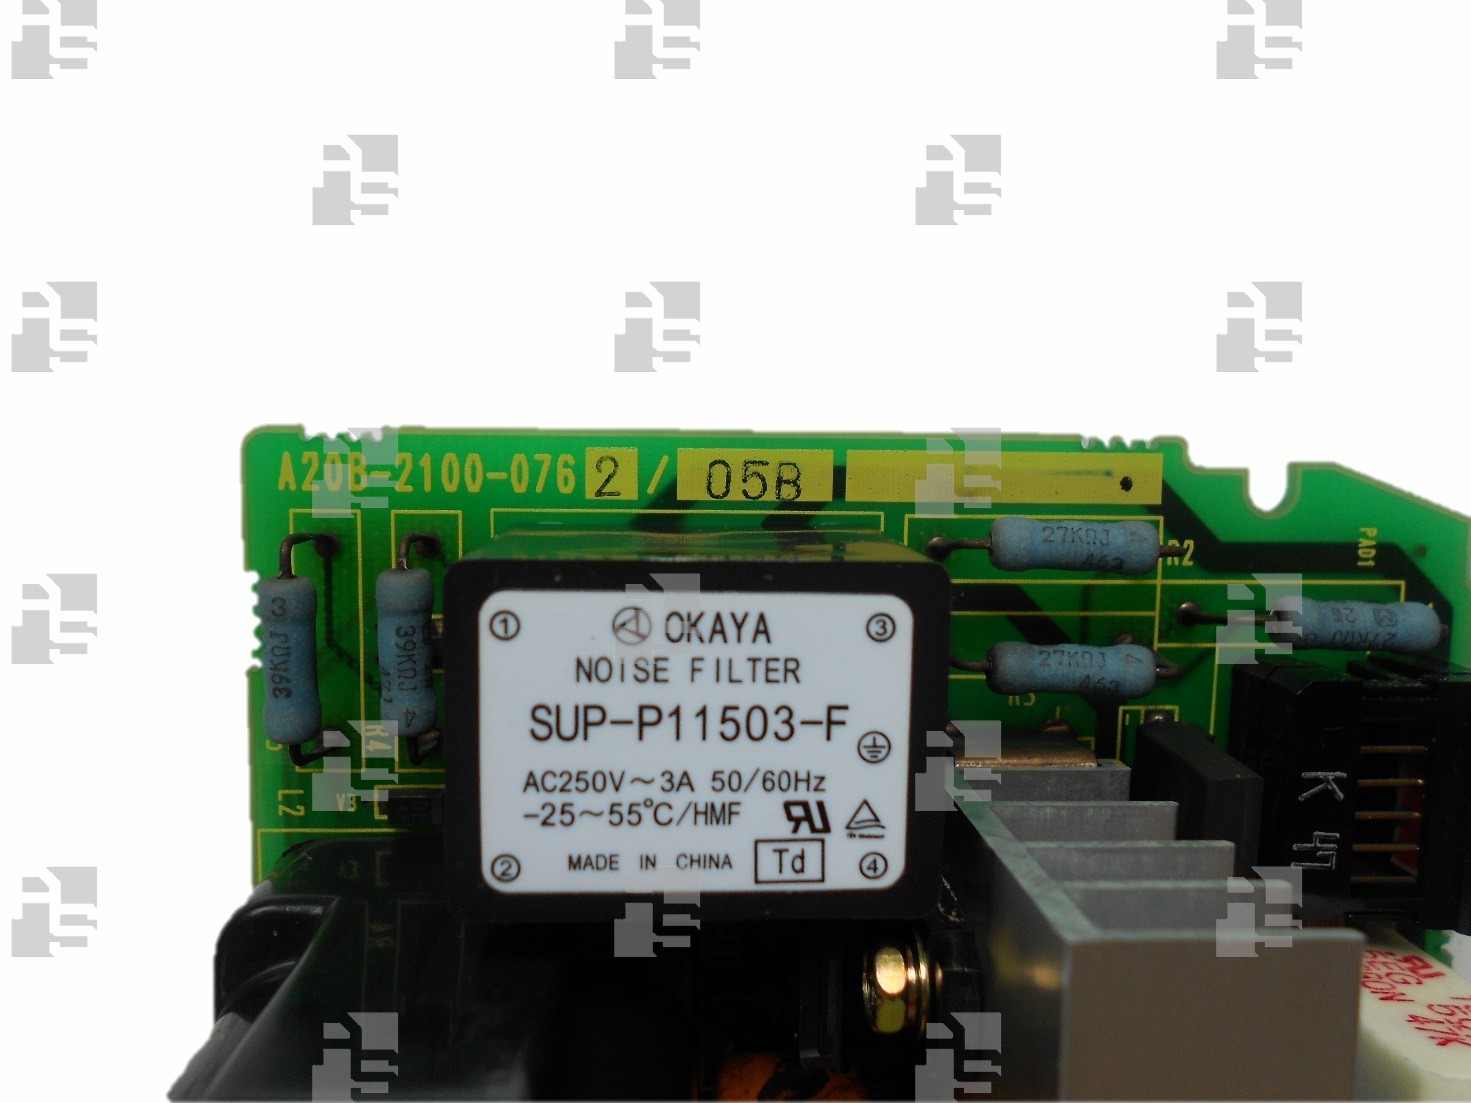 A20B-2100-0762 FANUC POWER CONTROL BOARD ALPHA ISP